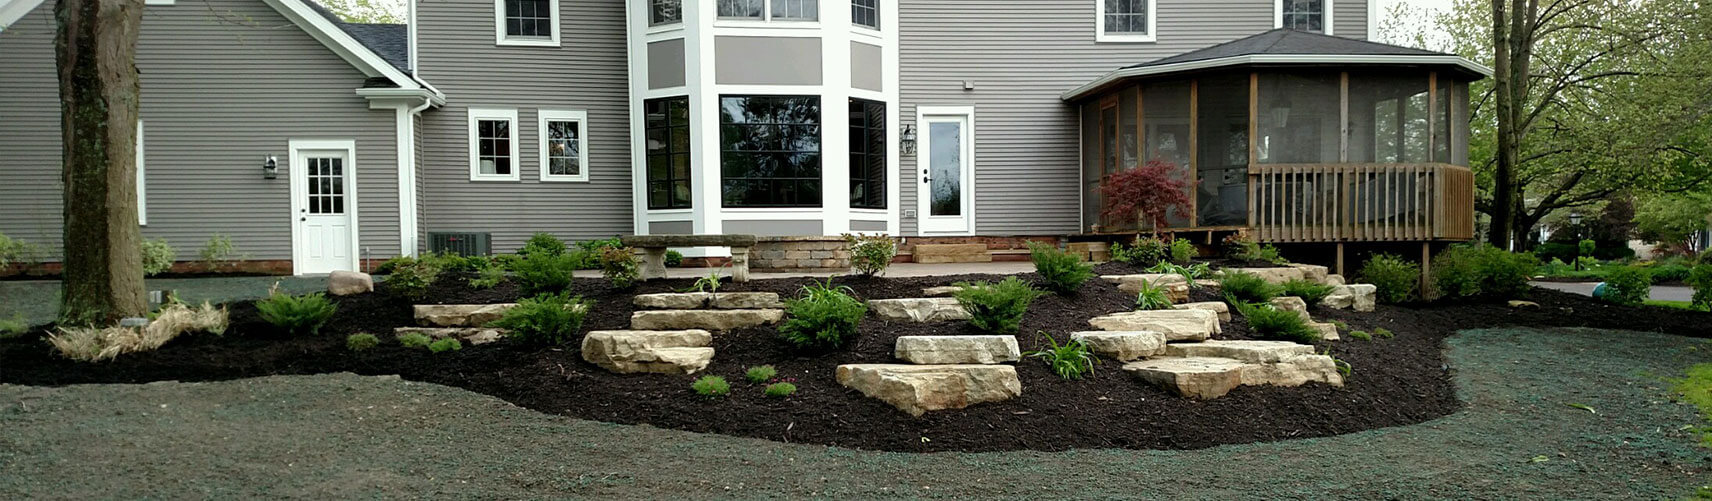 Chardon Landscape Design, Landscaping Company and Excavation Contractor